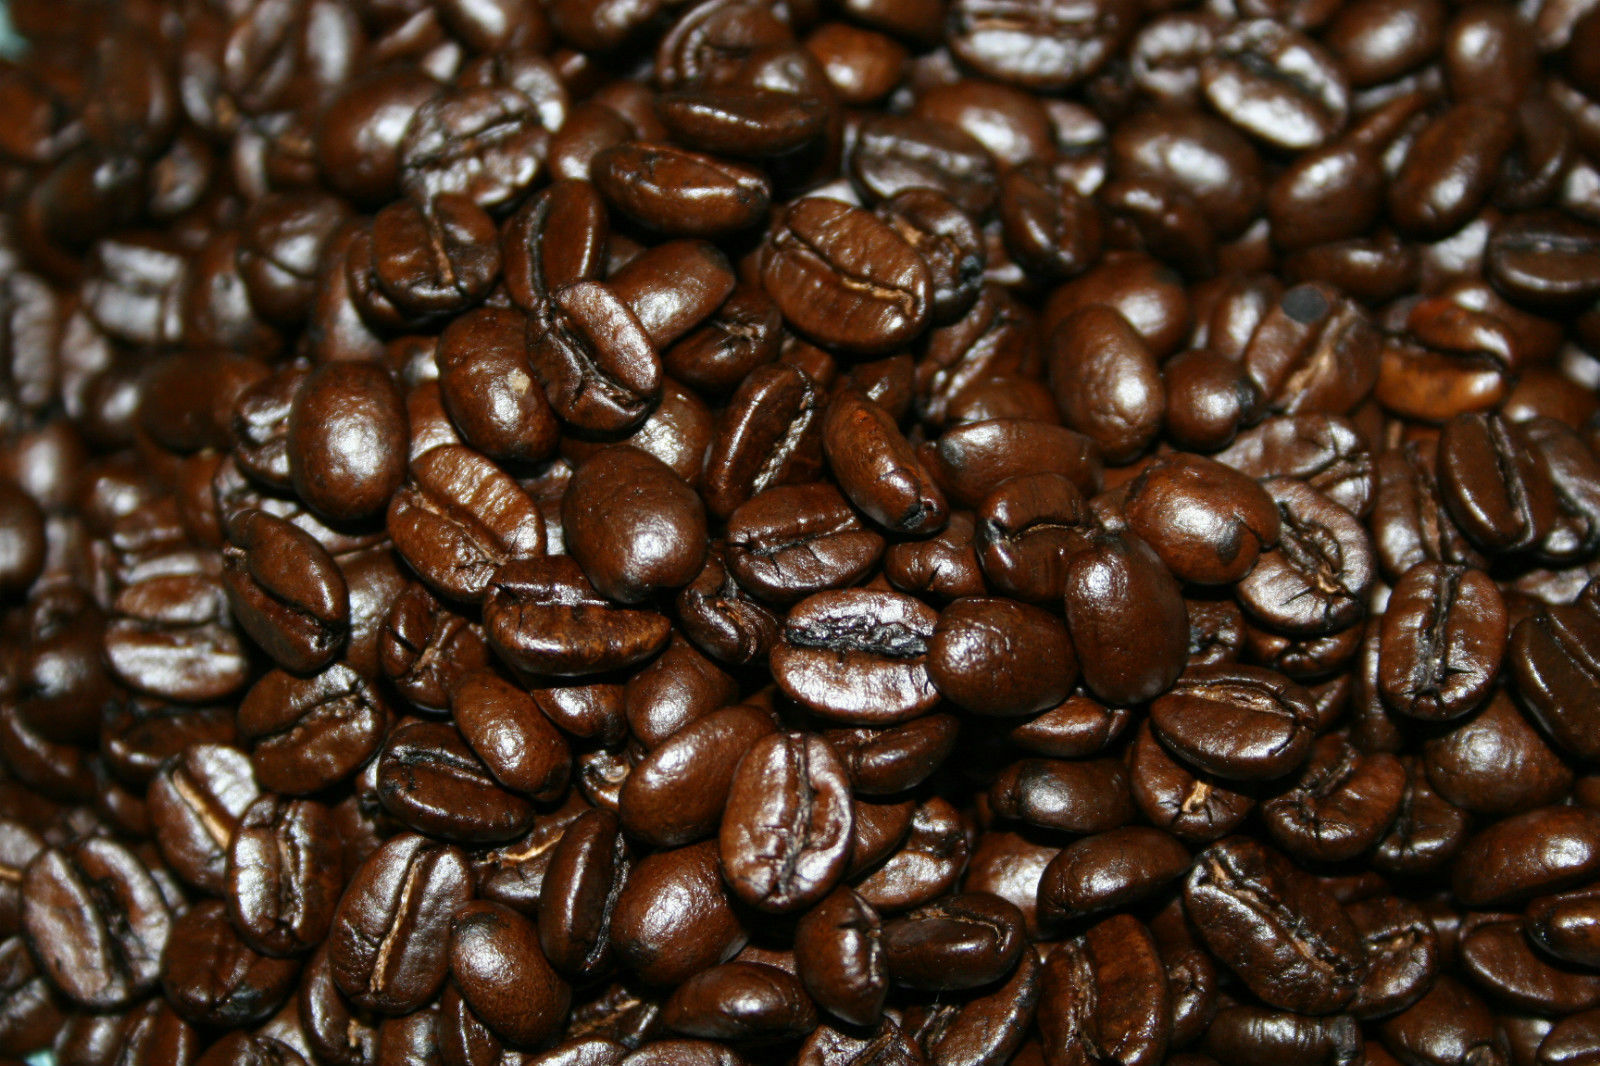 Sumatra Coffee Beans, Organic Fresh Roasted Daily Whole Beans  2 - 1 Pound Bags